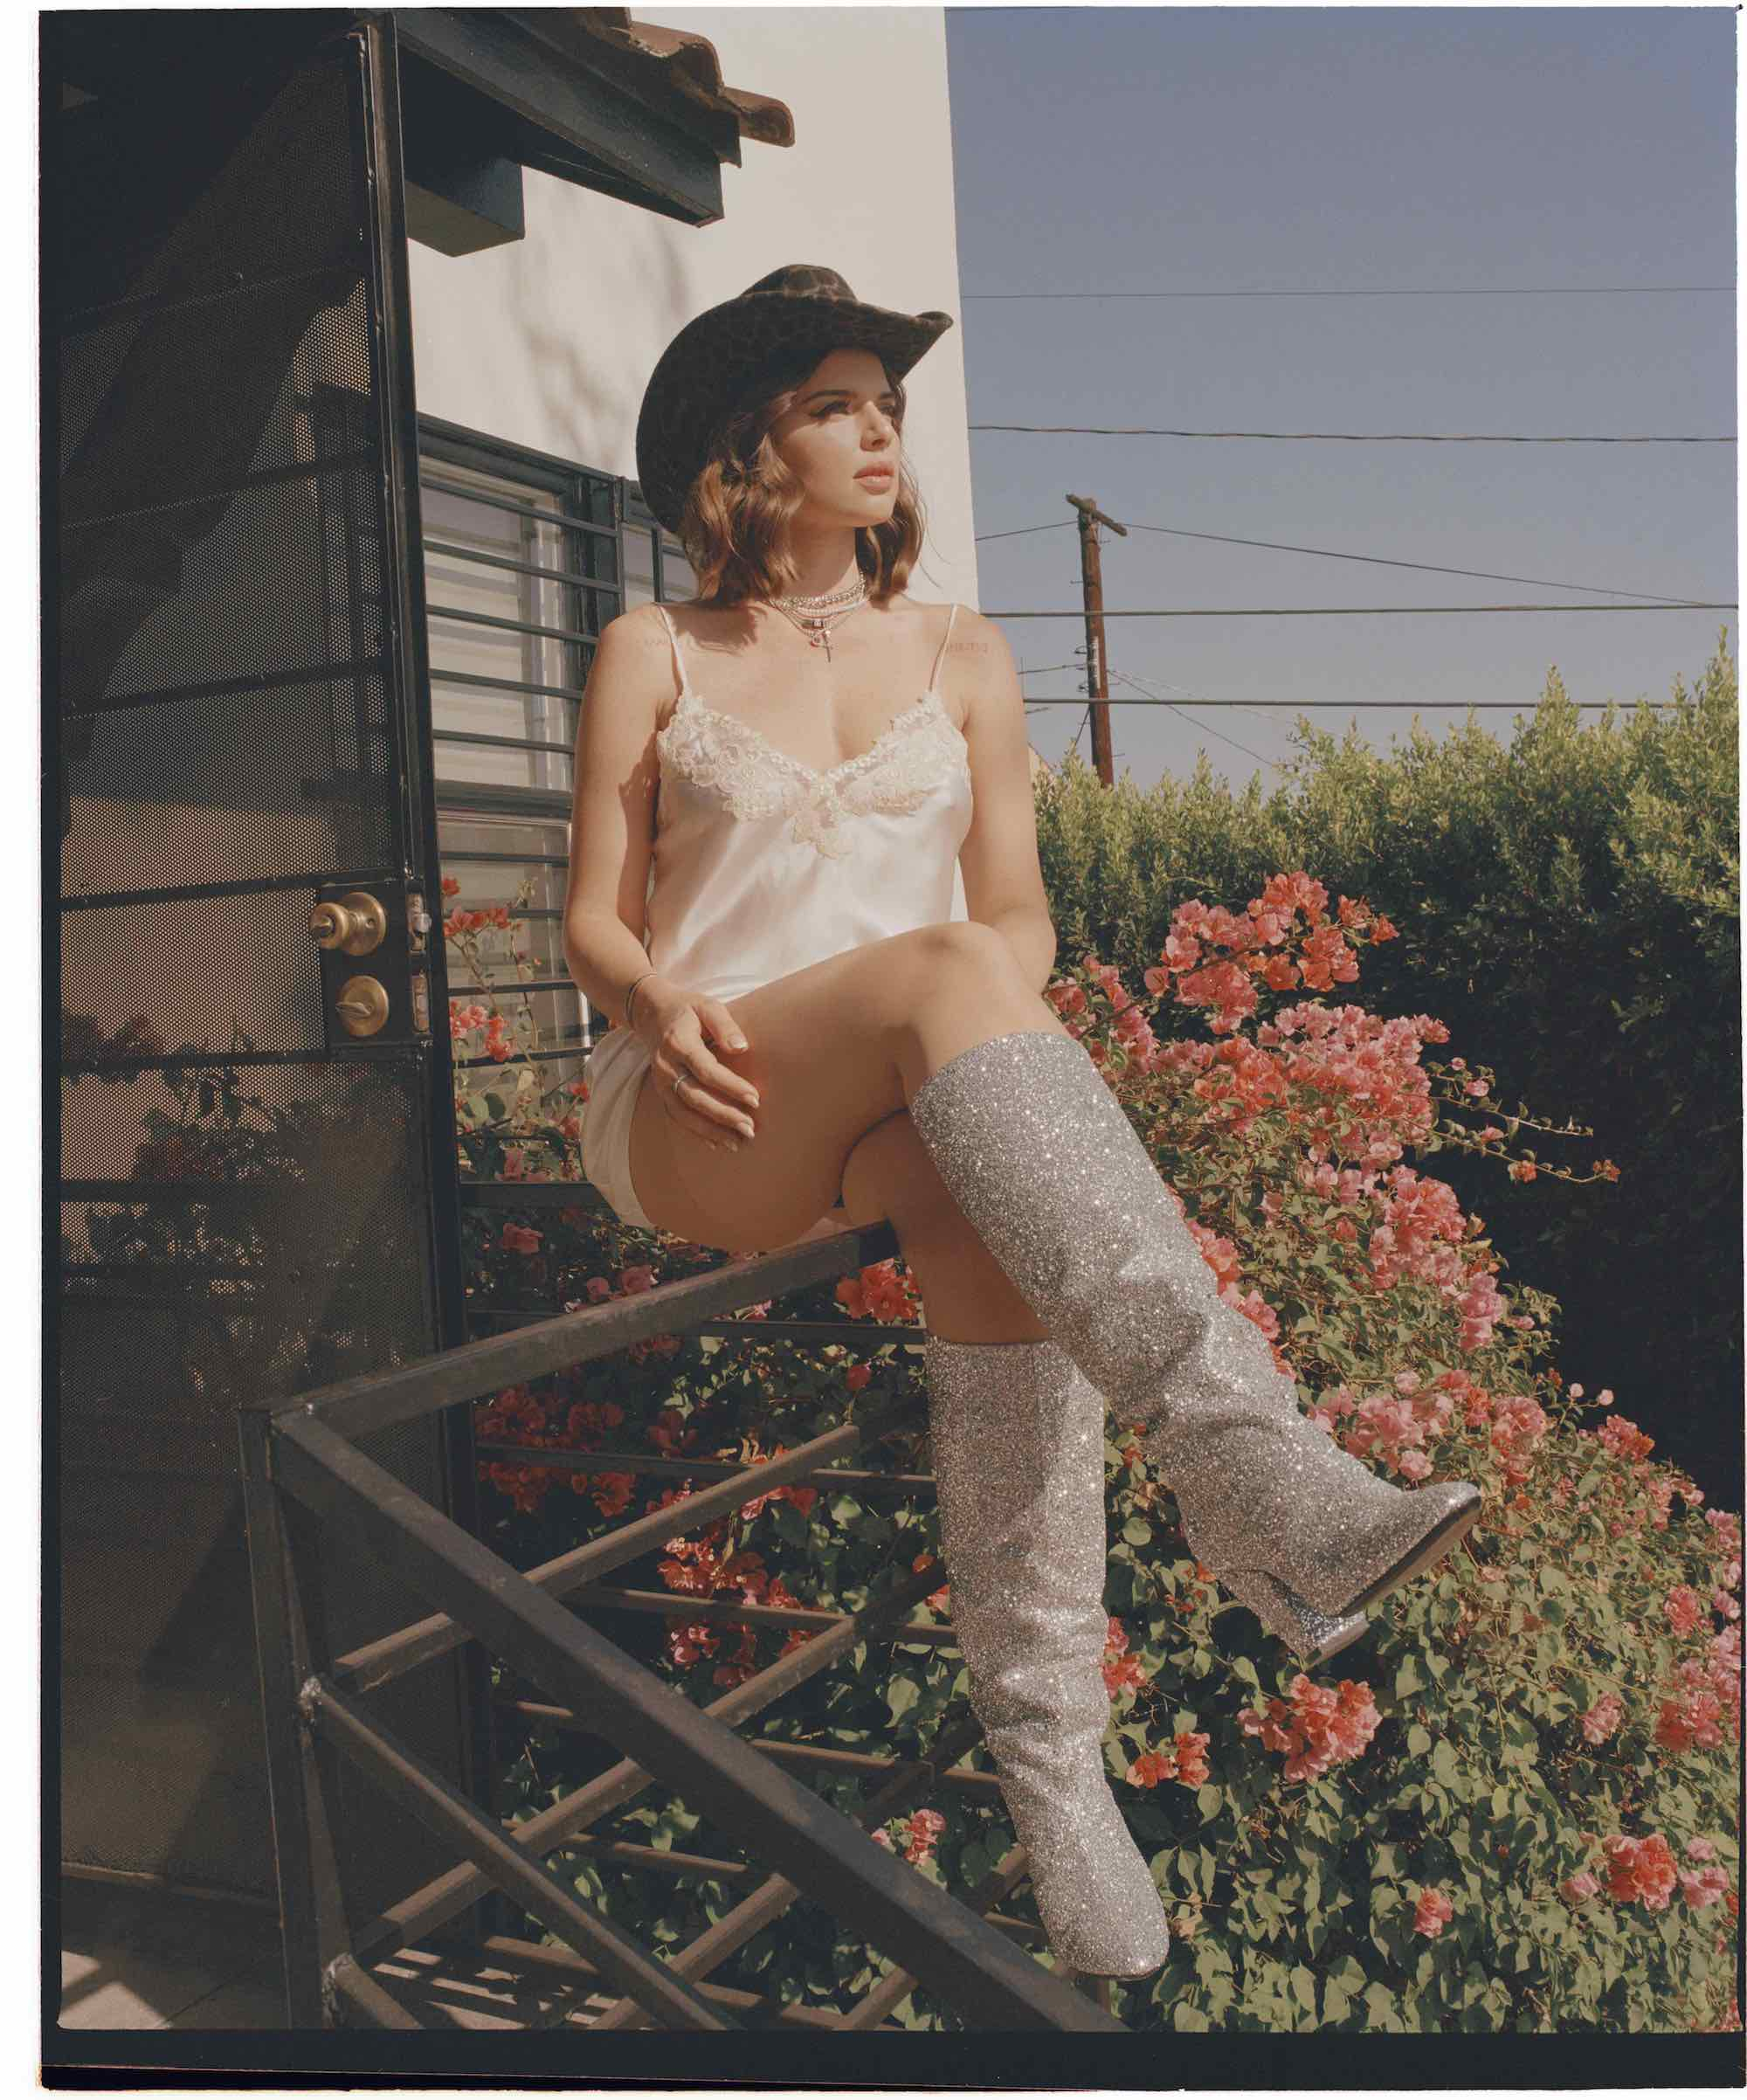 j Julia Fox in A24's Uncut Gems for the Winter issue of Wonderland cowboy hat